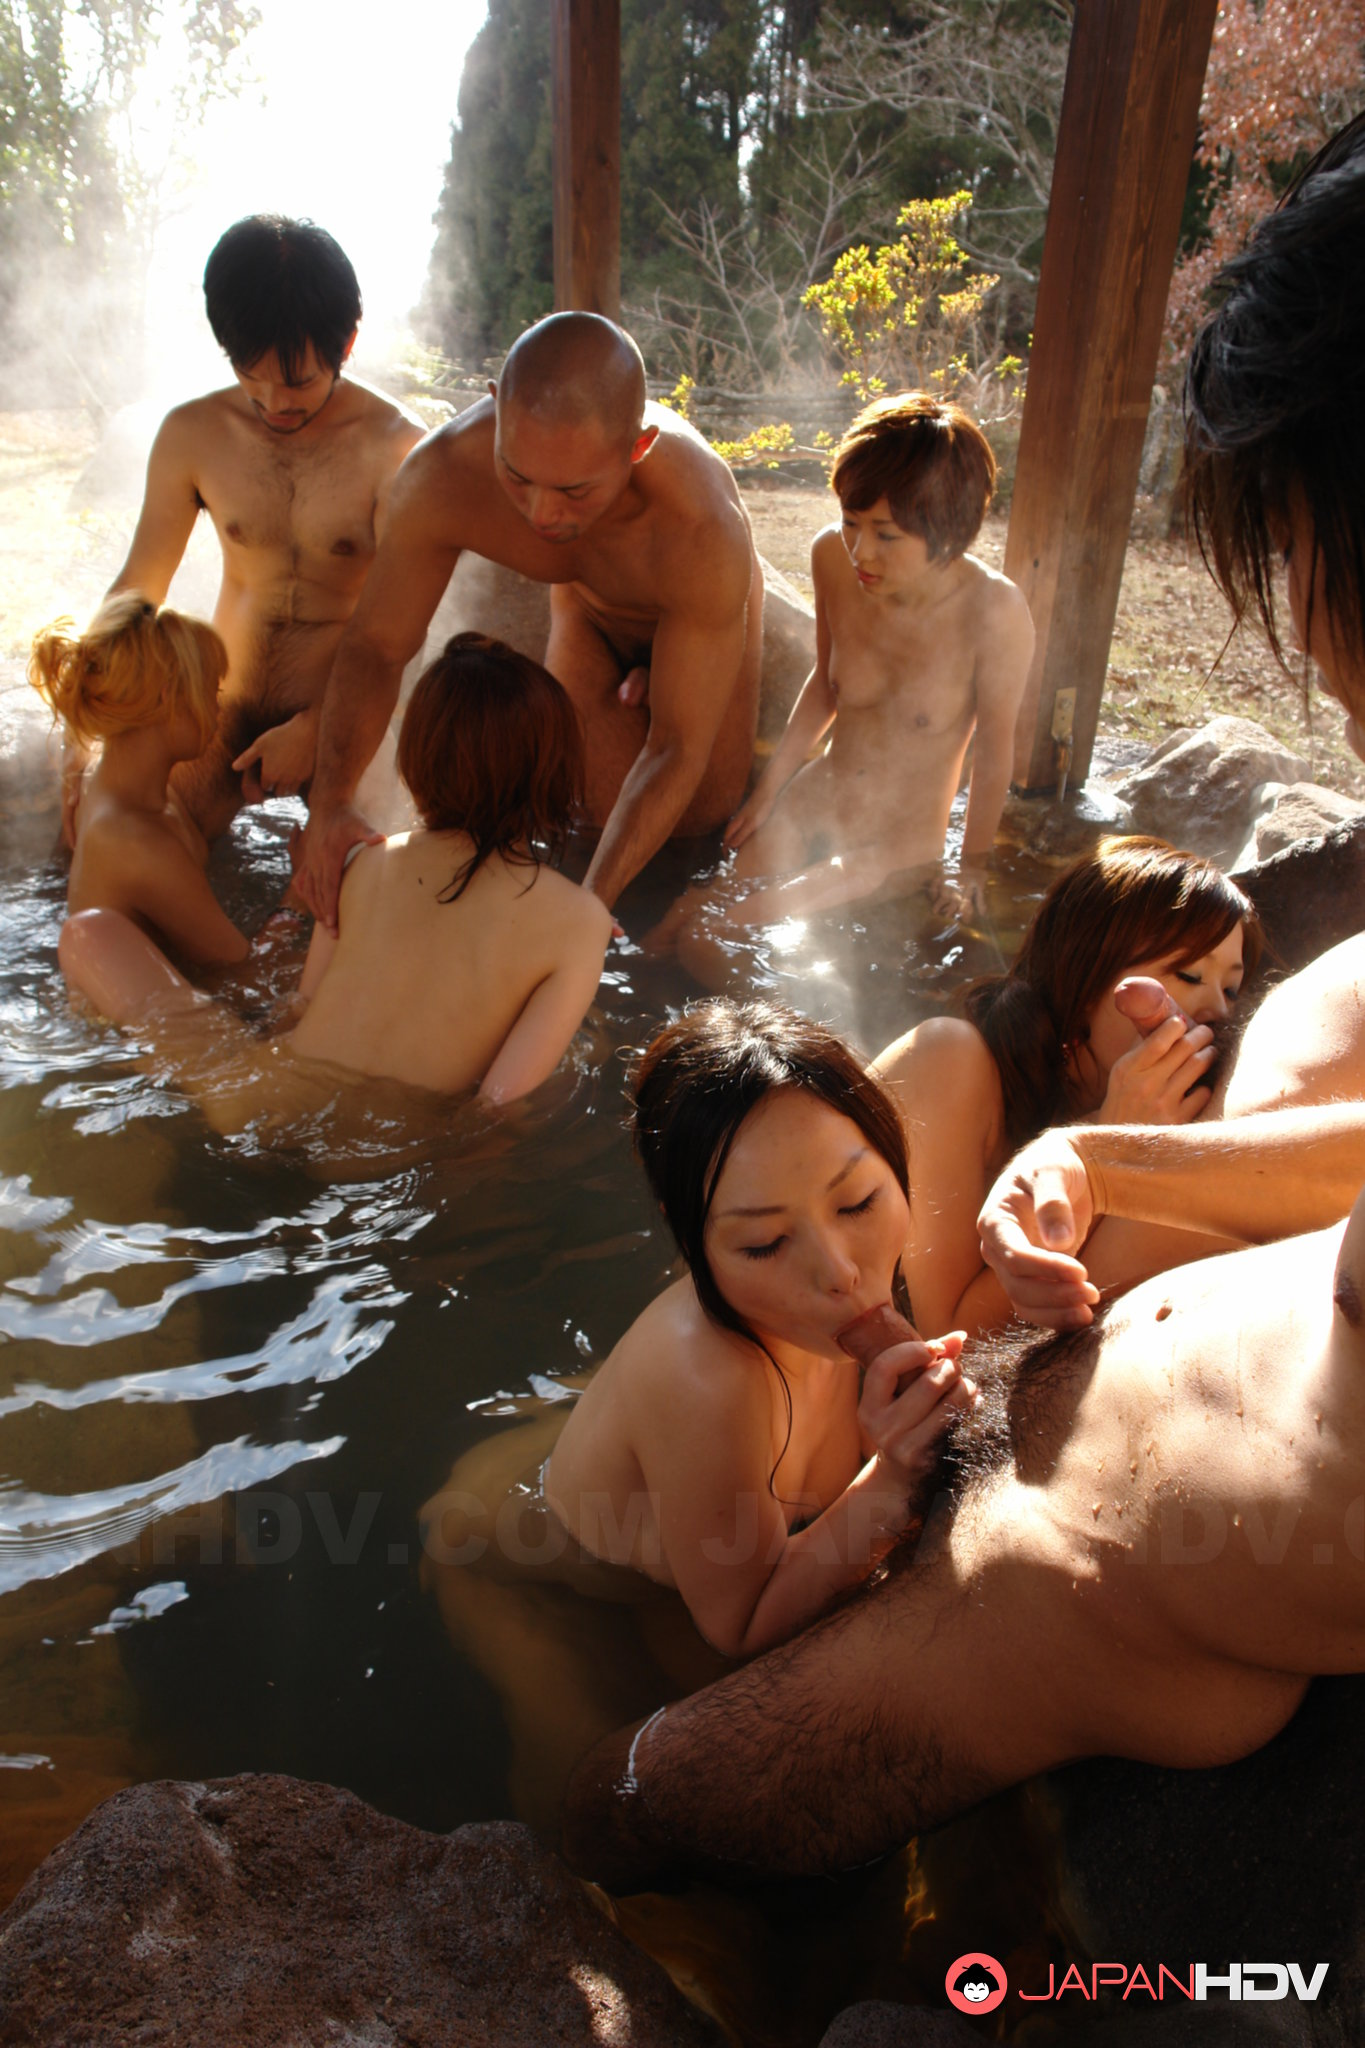 Uncensored japanese orgy with 6 hot asian girls - 4 7